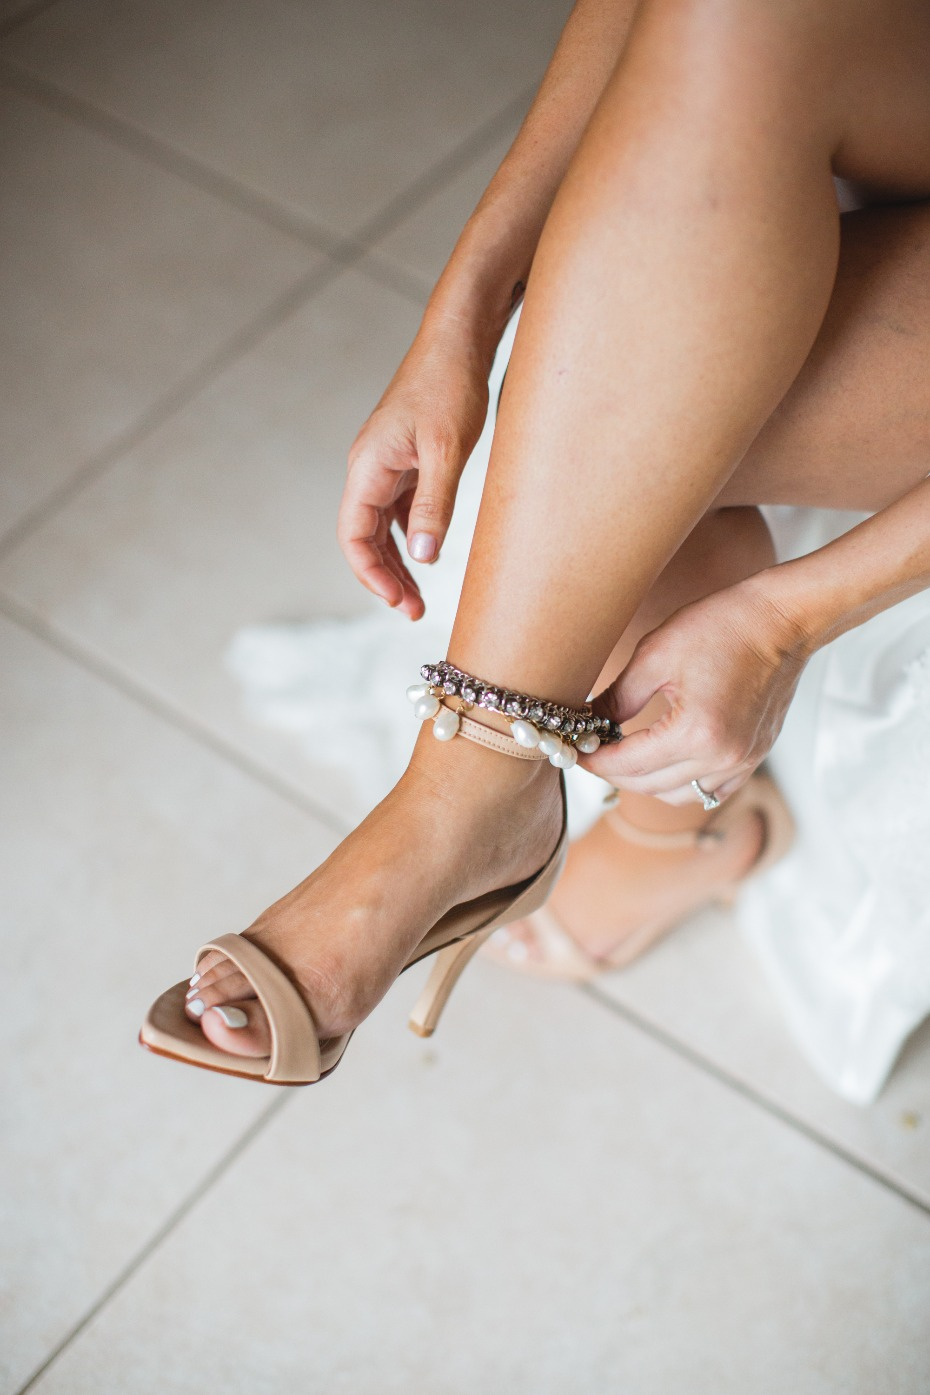 Nude heels with anklets